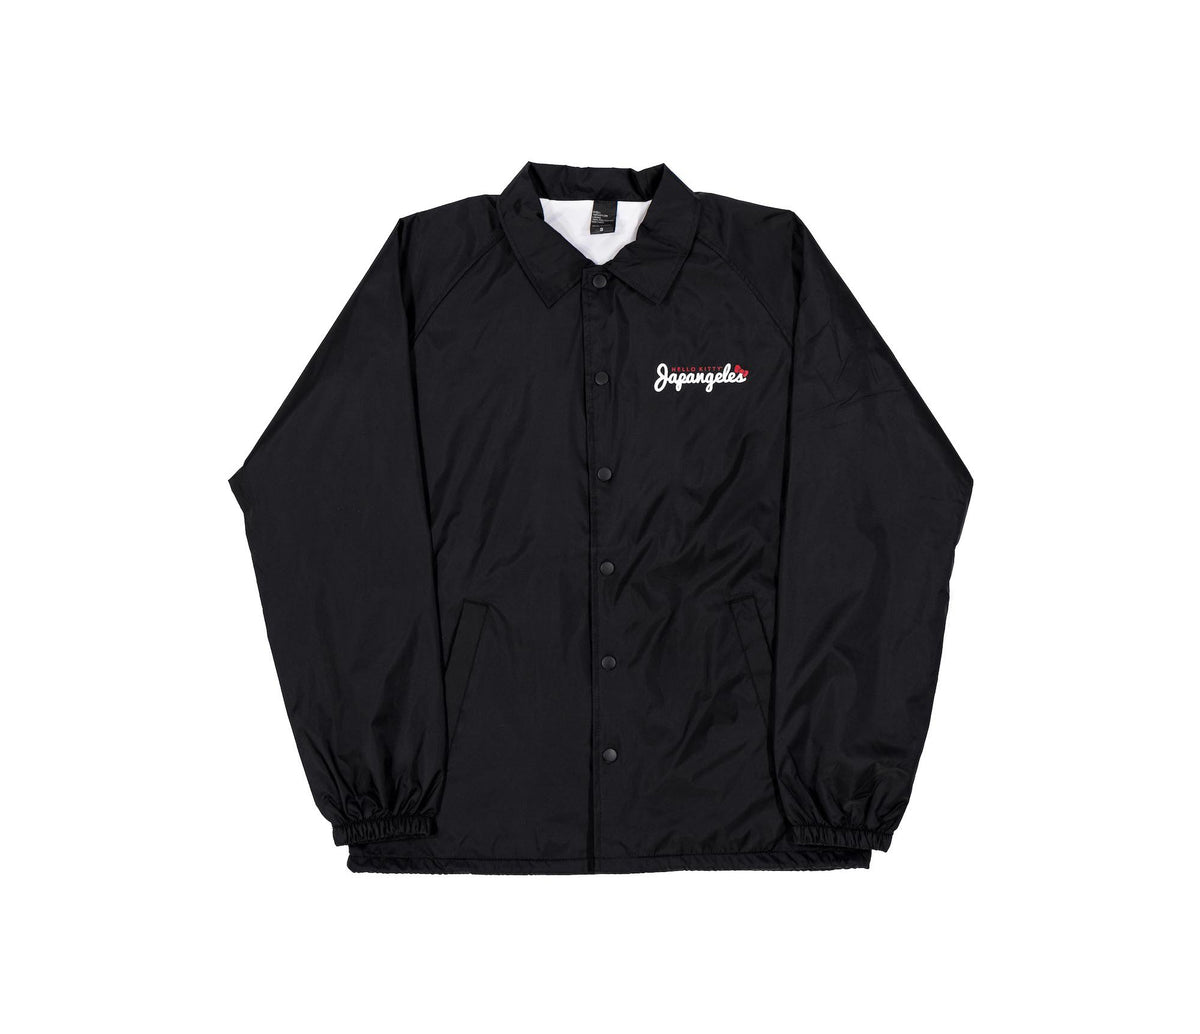 Japangeles x Hello Kitty Coach Jacket Black